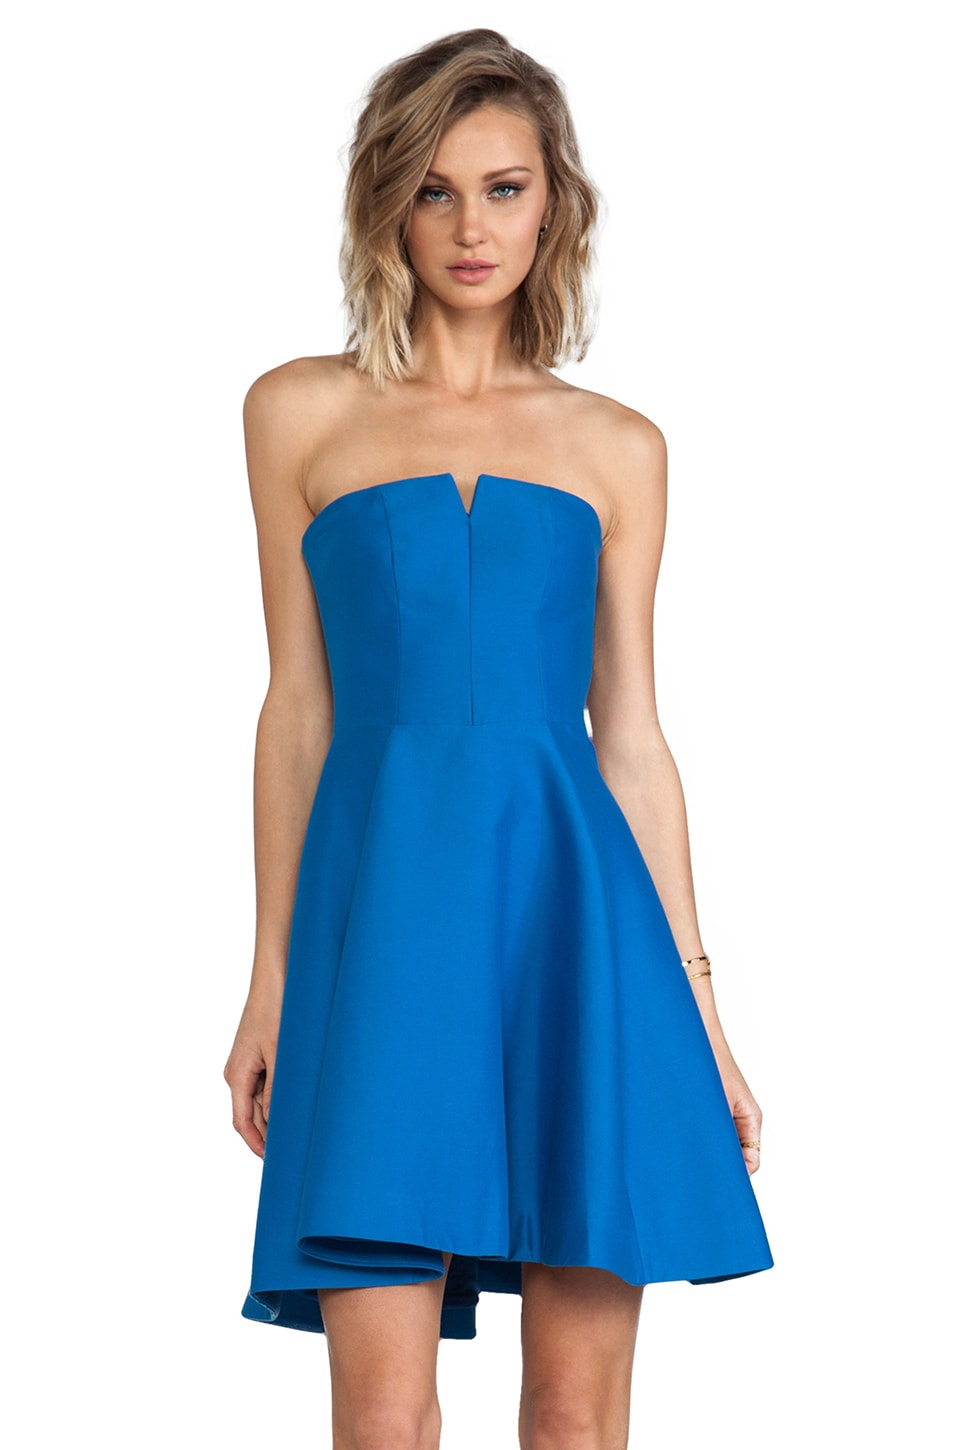 Halston Heritage Strapless Structured Dress With Flare Skirt in Aquamarine